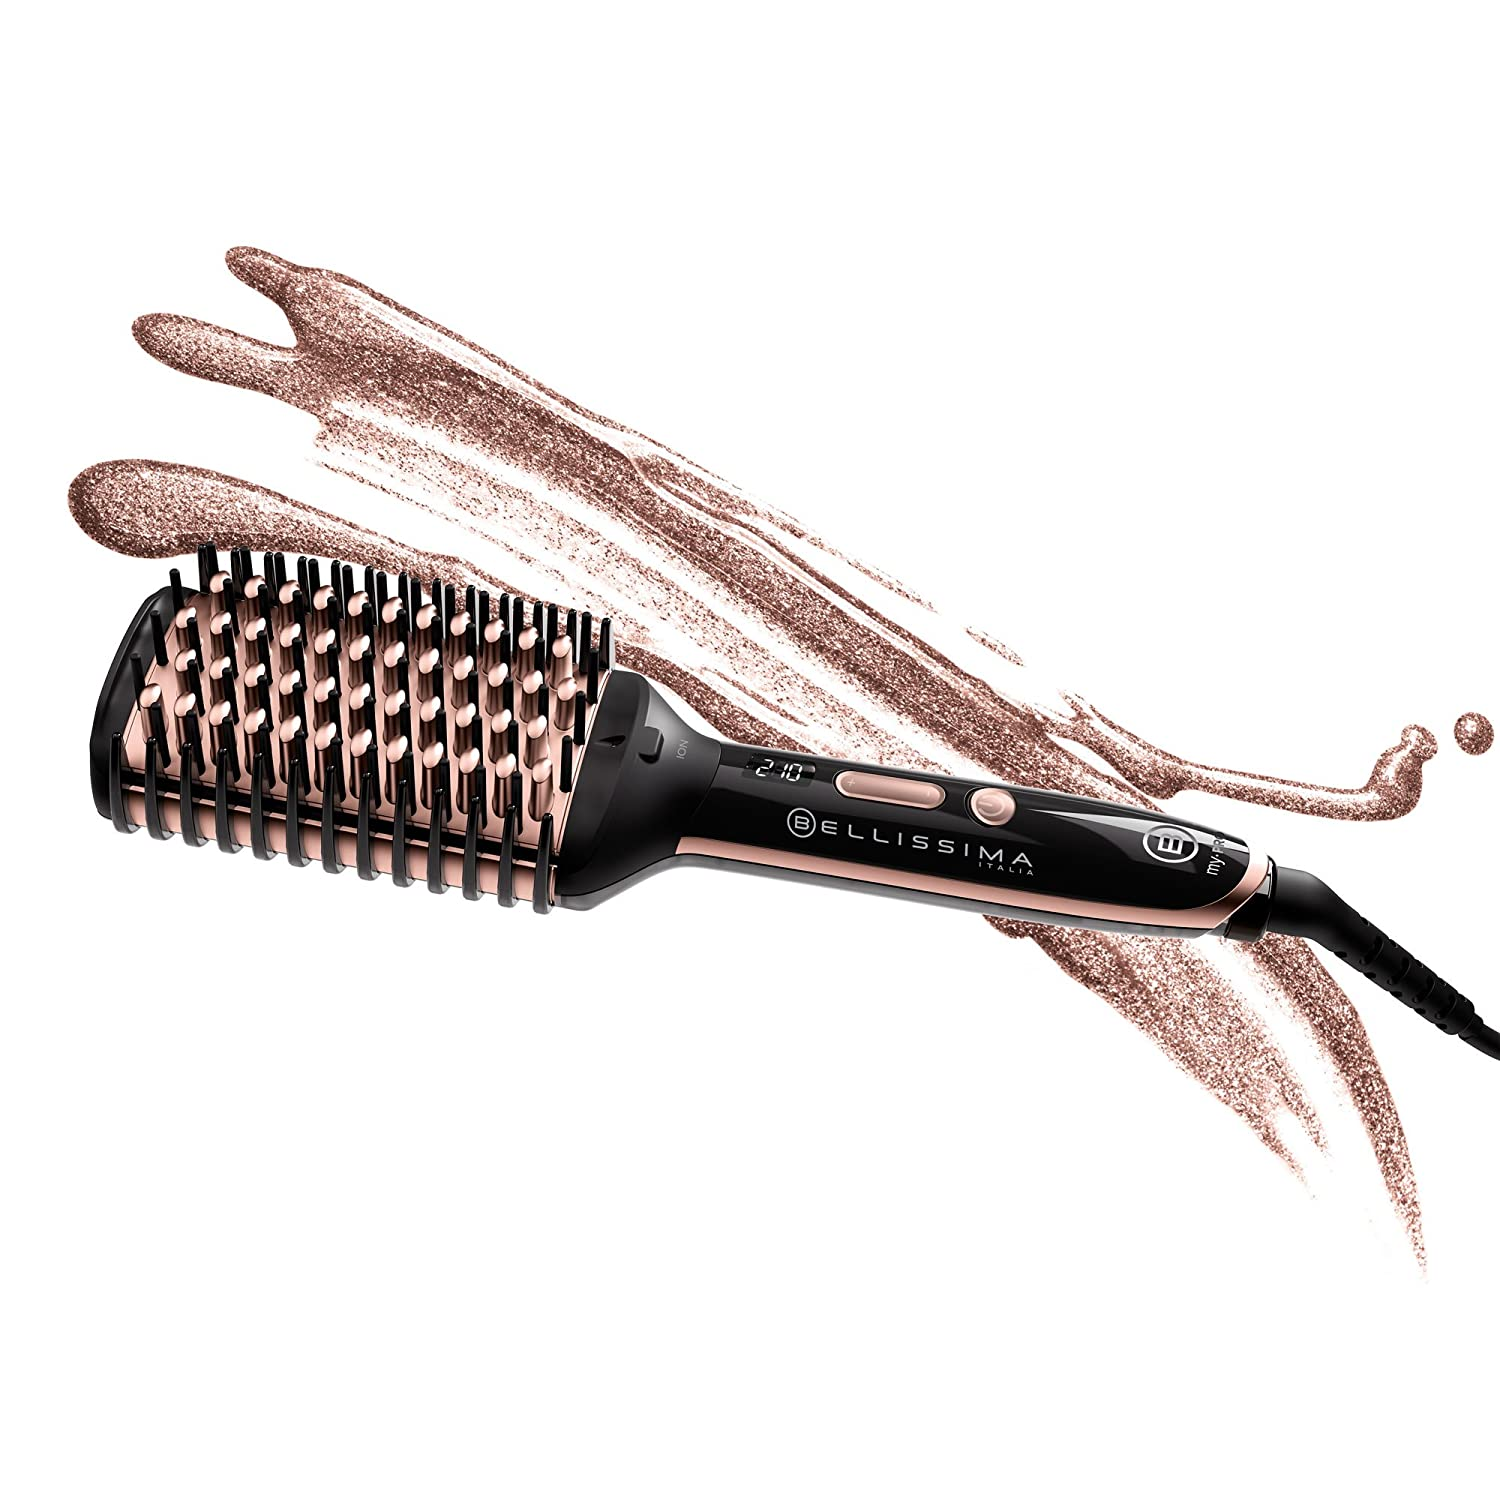 Imetec Bellissima My Pro Magic Straight Brush PB11 100 Cepillo alisador: Amazon.es: Salud y cuidado personal